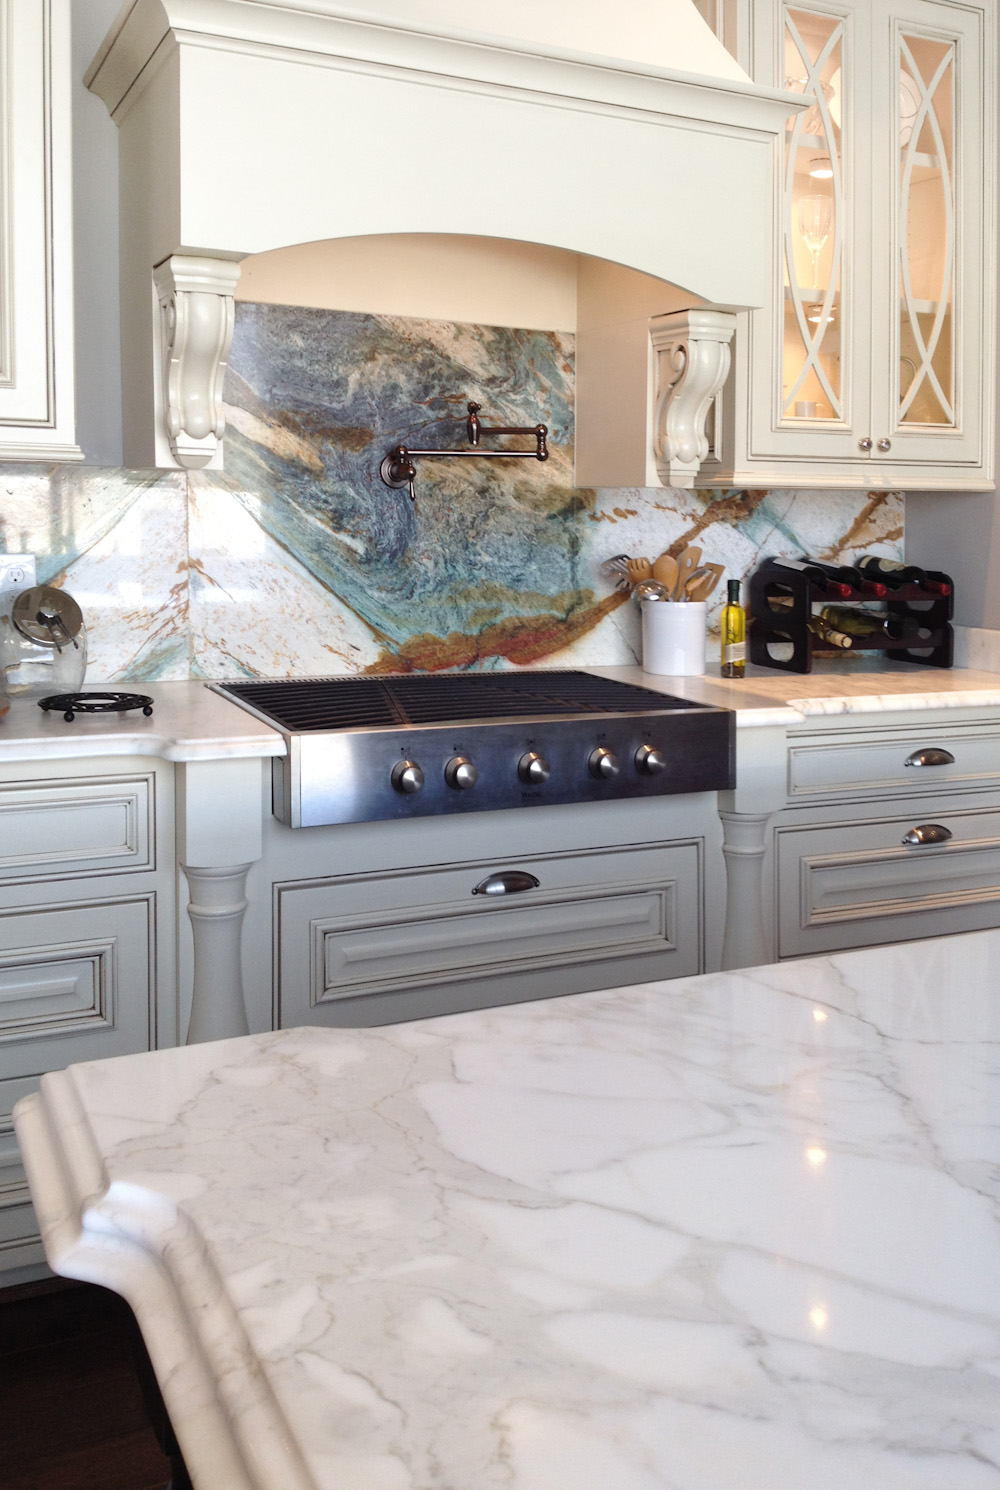 The natural stone backsplash in this kitchen is truly a work of art. Photo:  Stone Interiors